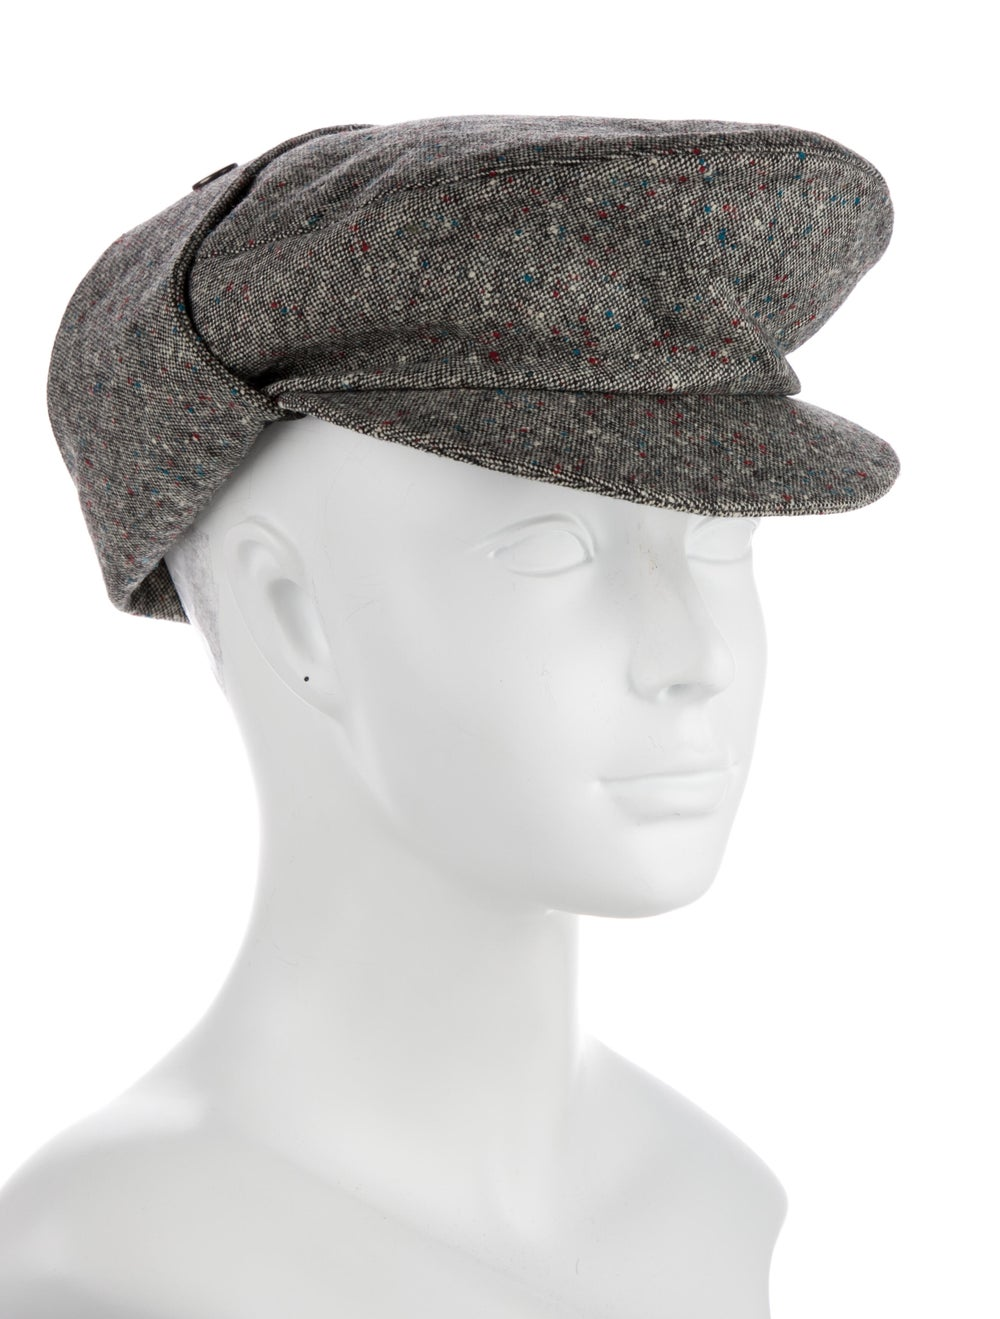 Christian Dior Wool Speckled Hat Grey - image 3